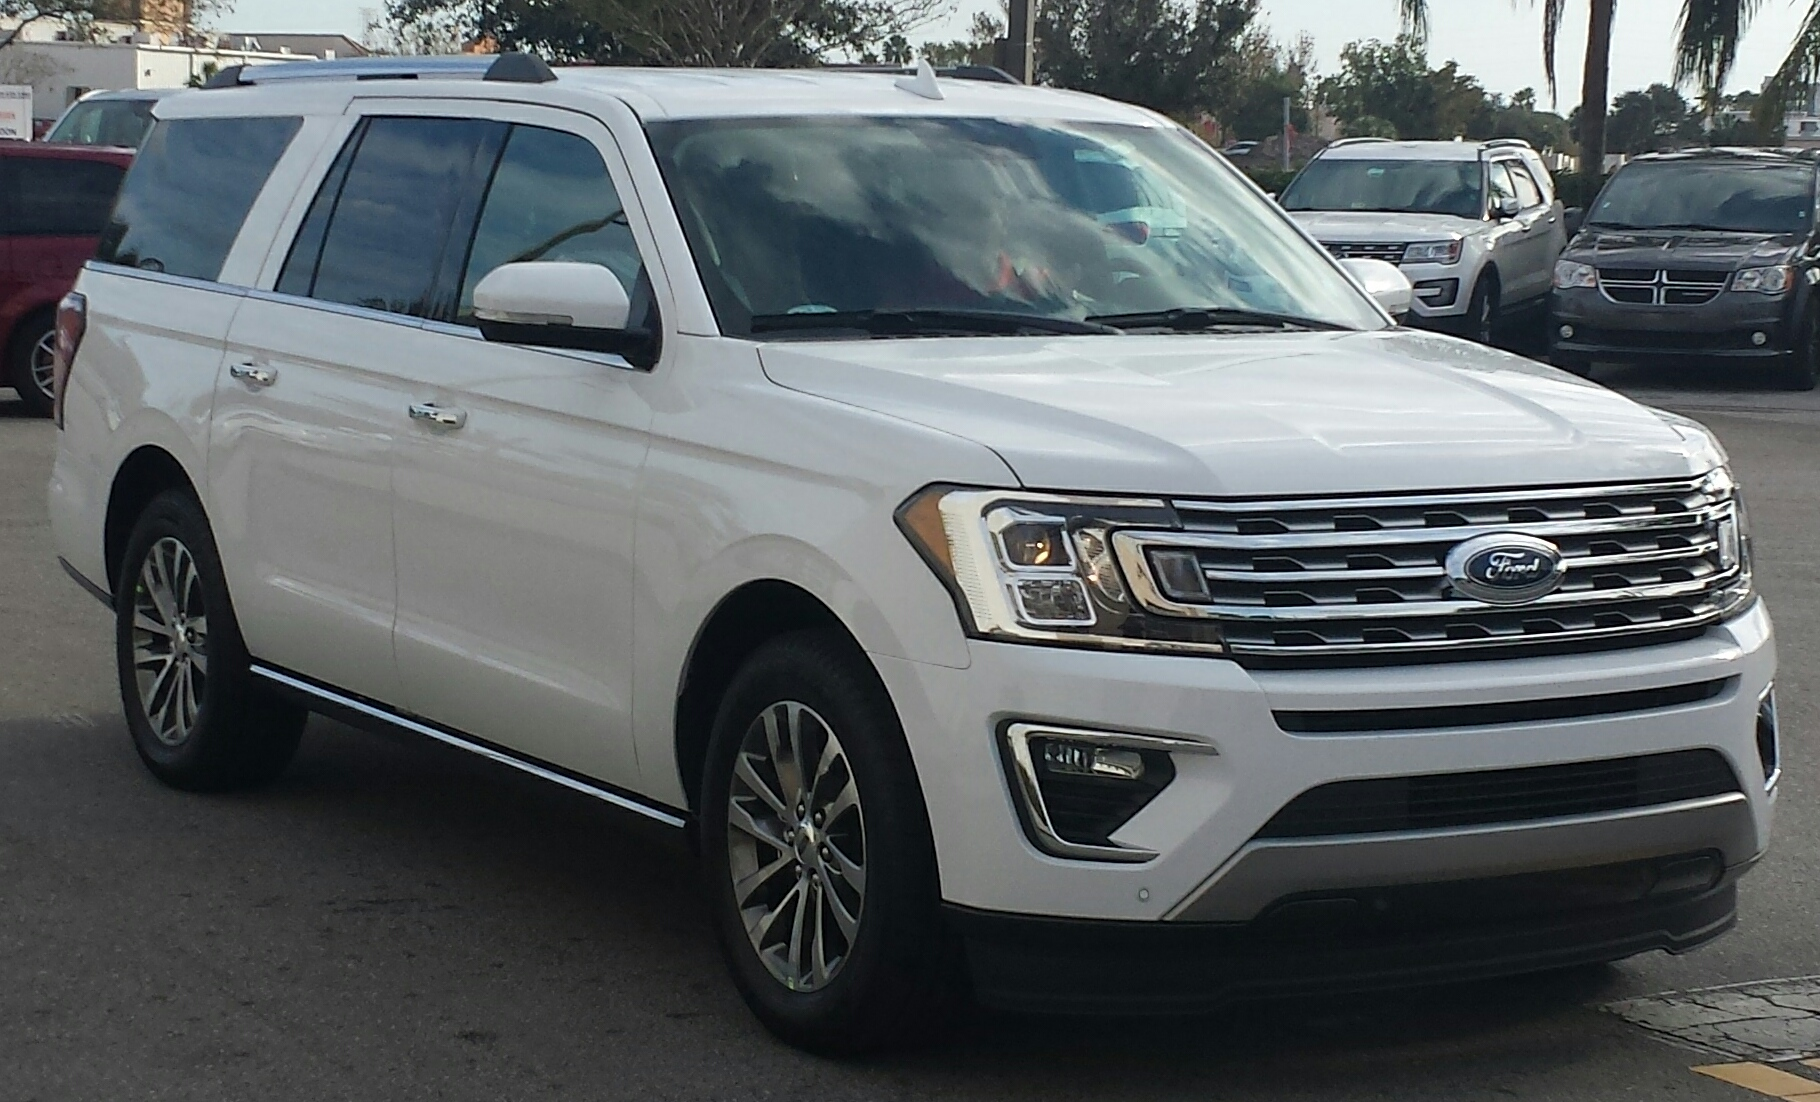 Ford Expedition - 48,7%